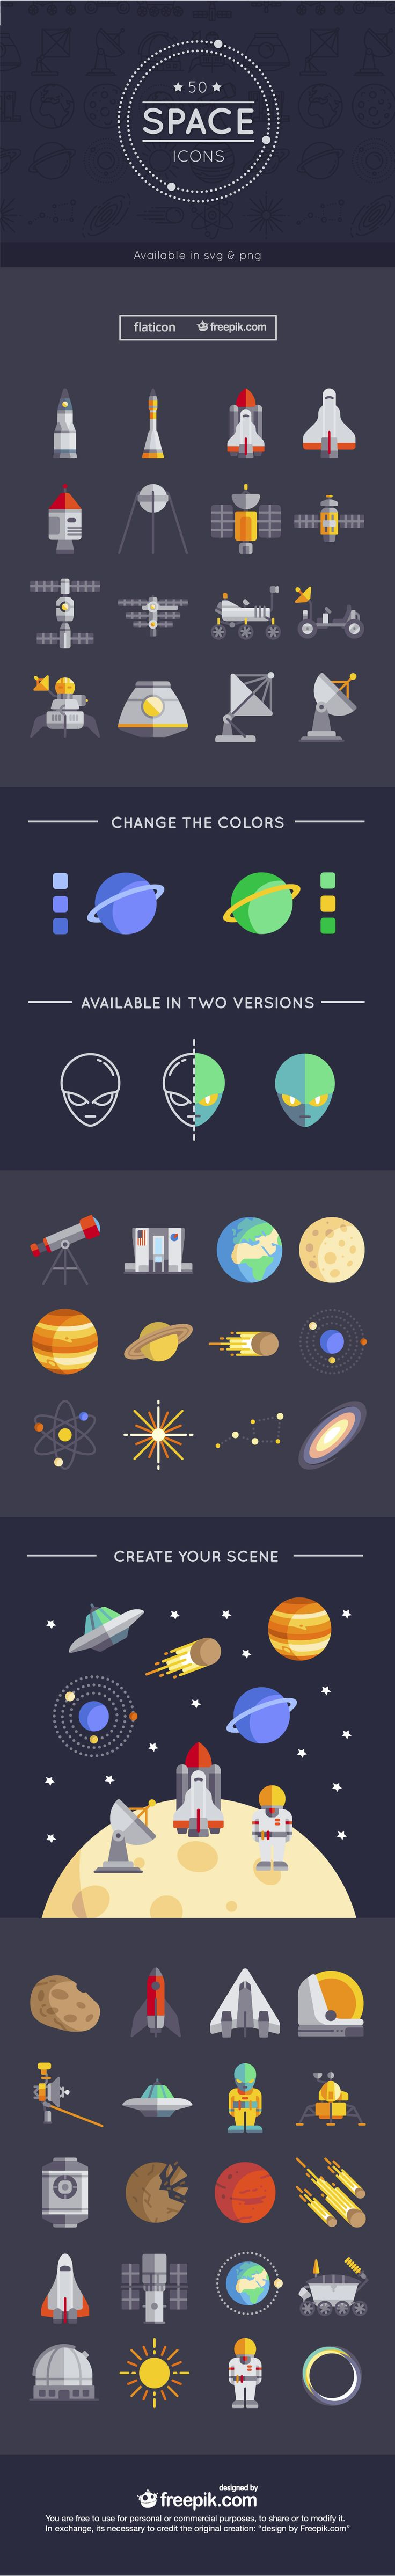 50 Space Icons